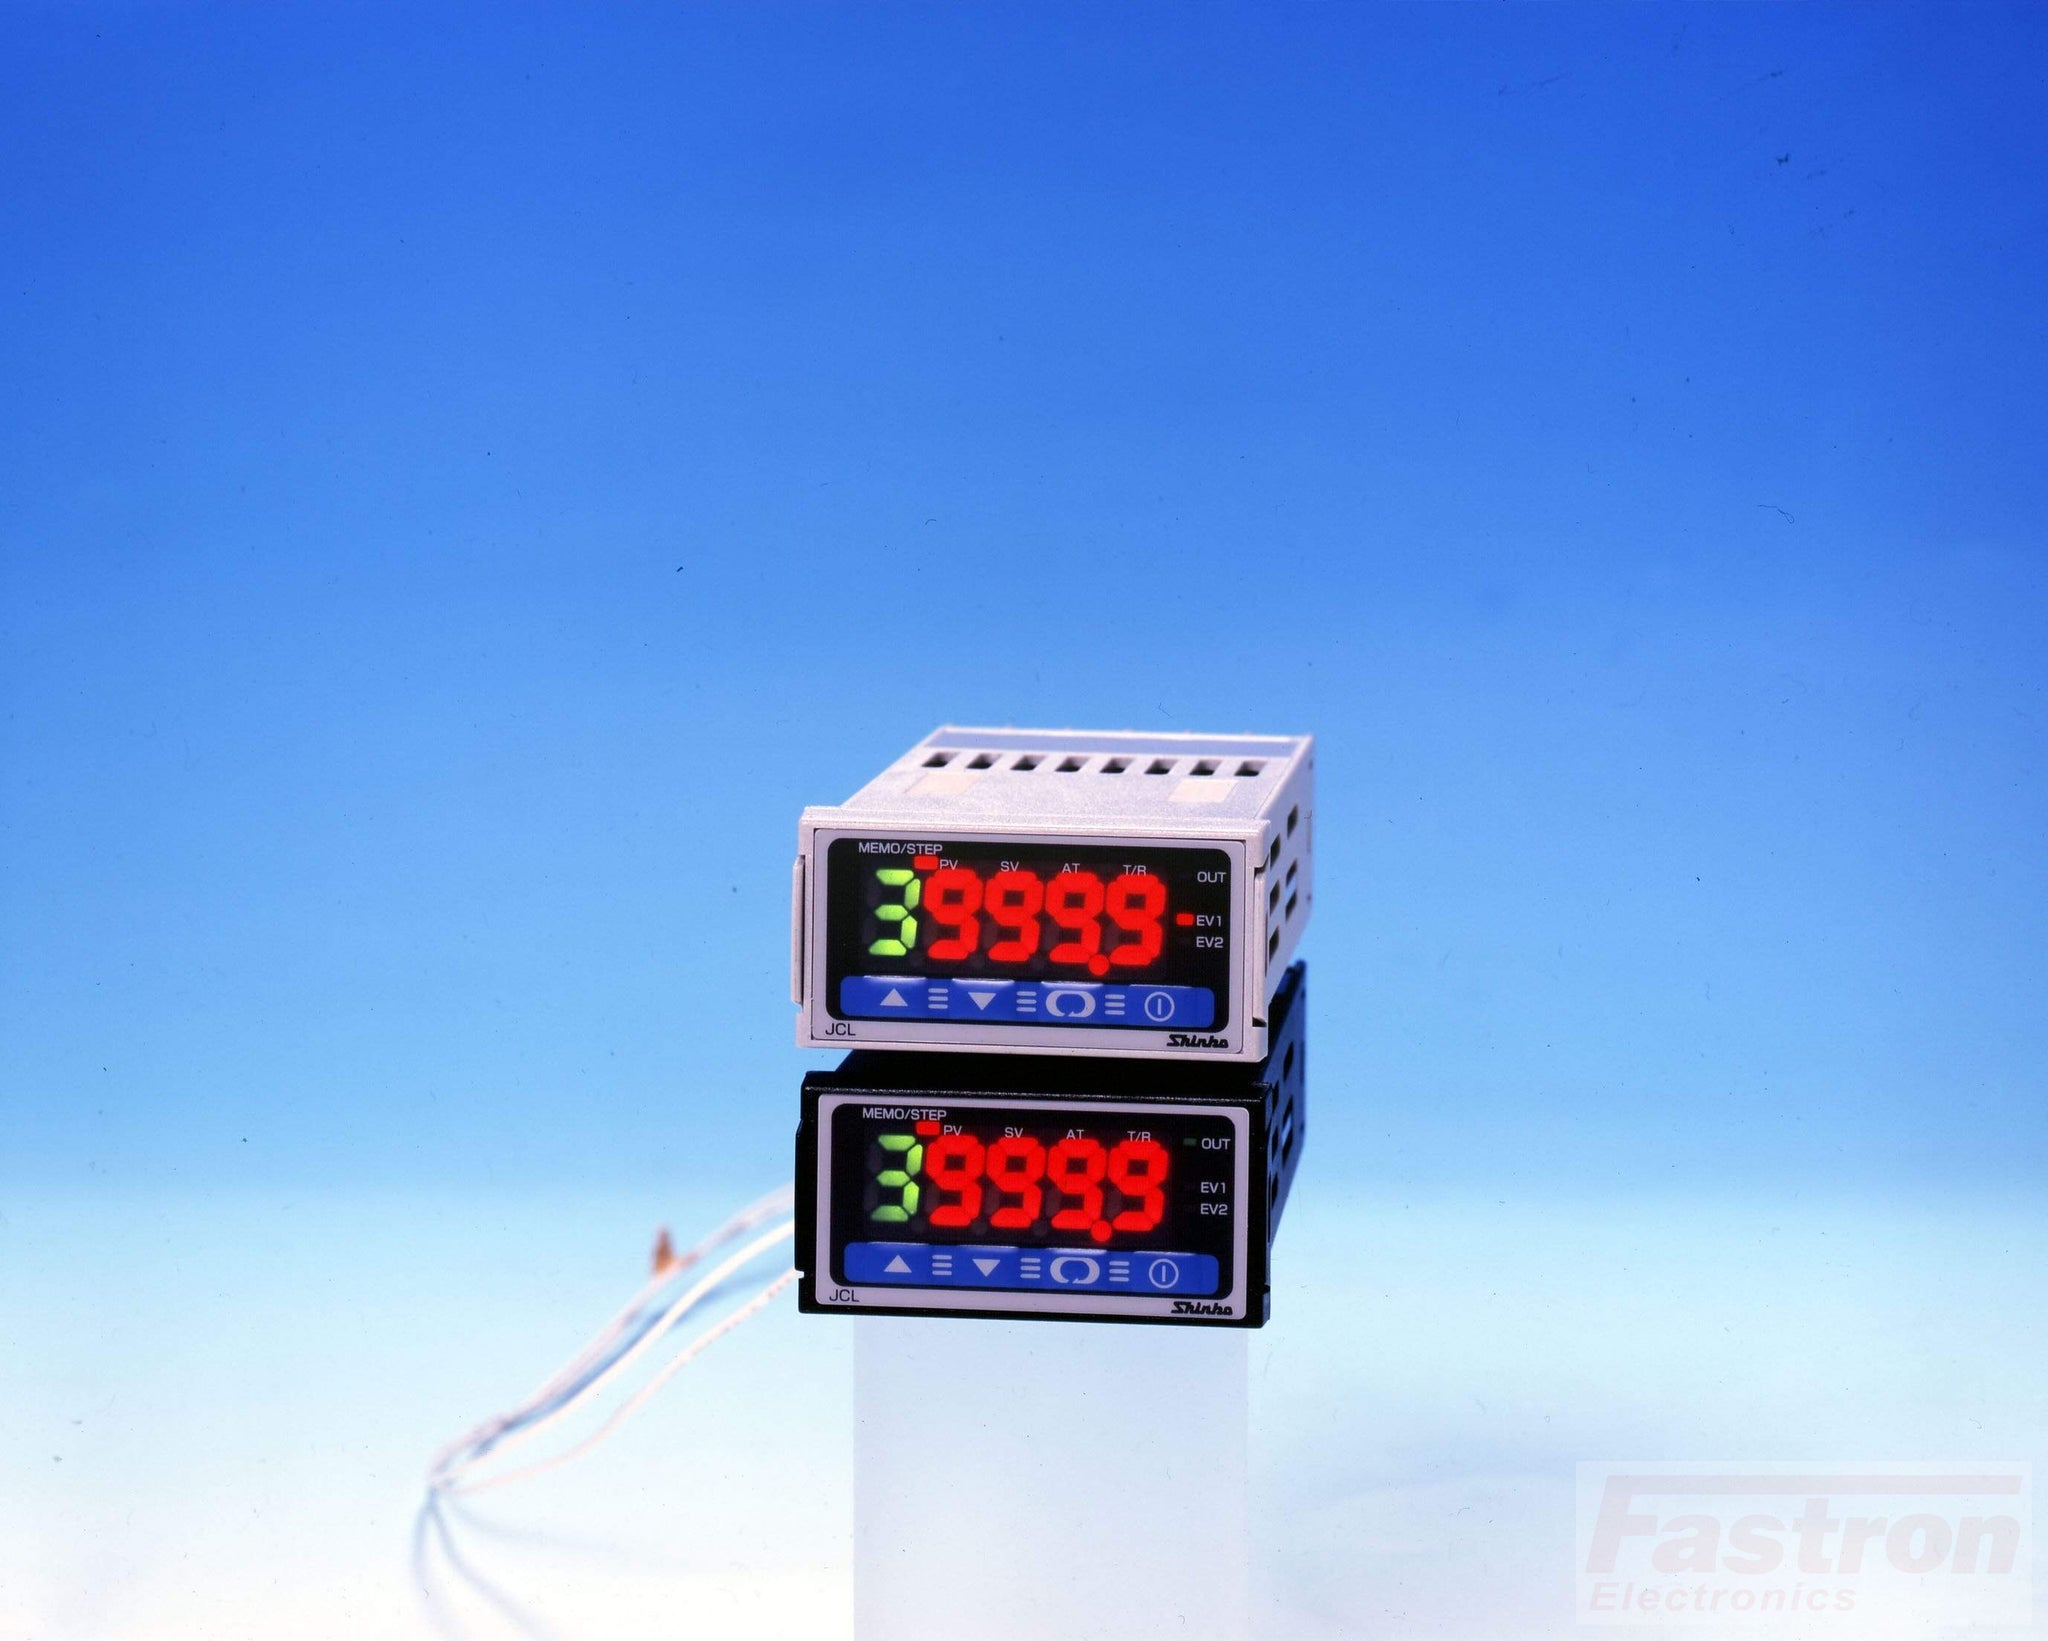 JCL33AR/M1 Temperature Controller, 48x24mm, 24VAC/DC, Relay output, 9 step pattern